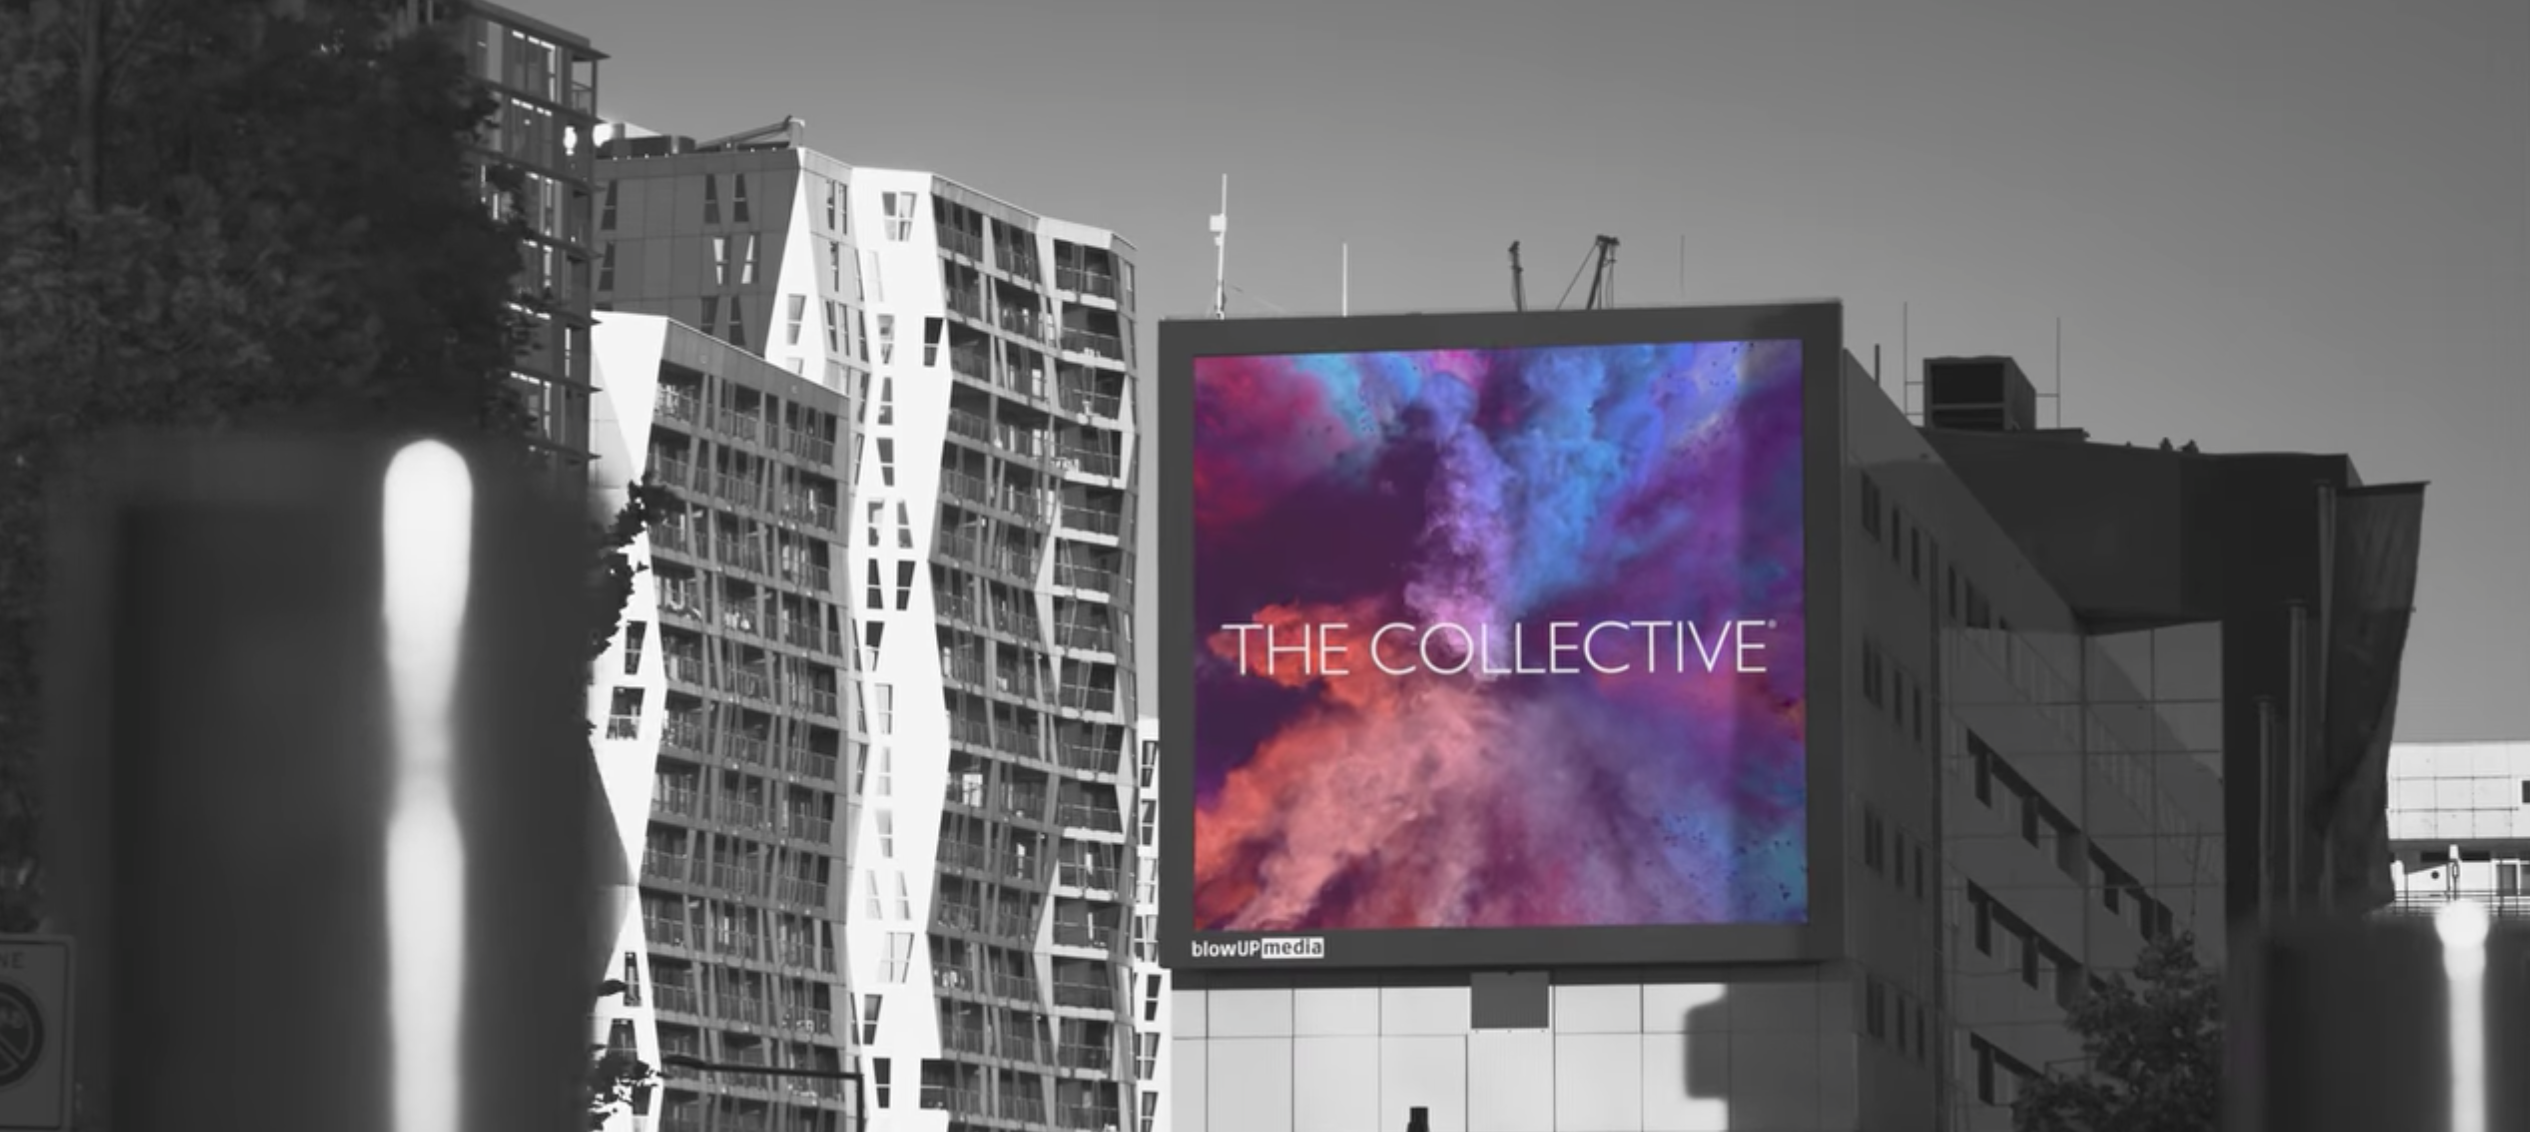 blowUP media lanceert The Collective in Nederland